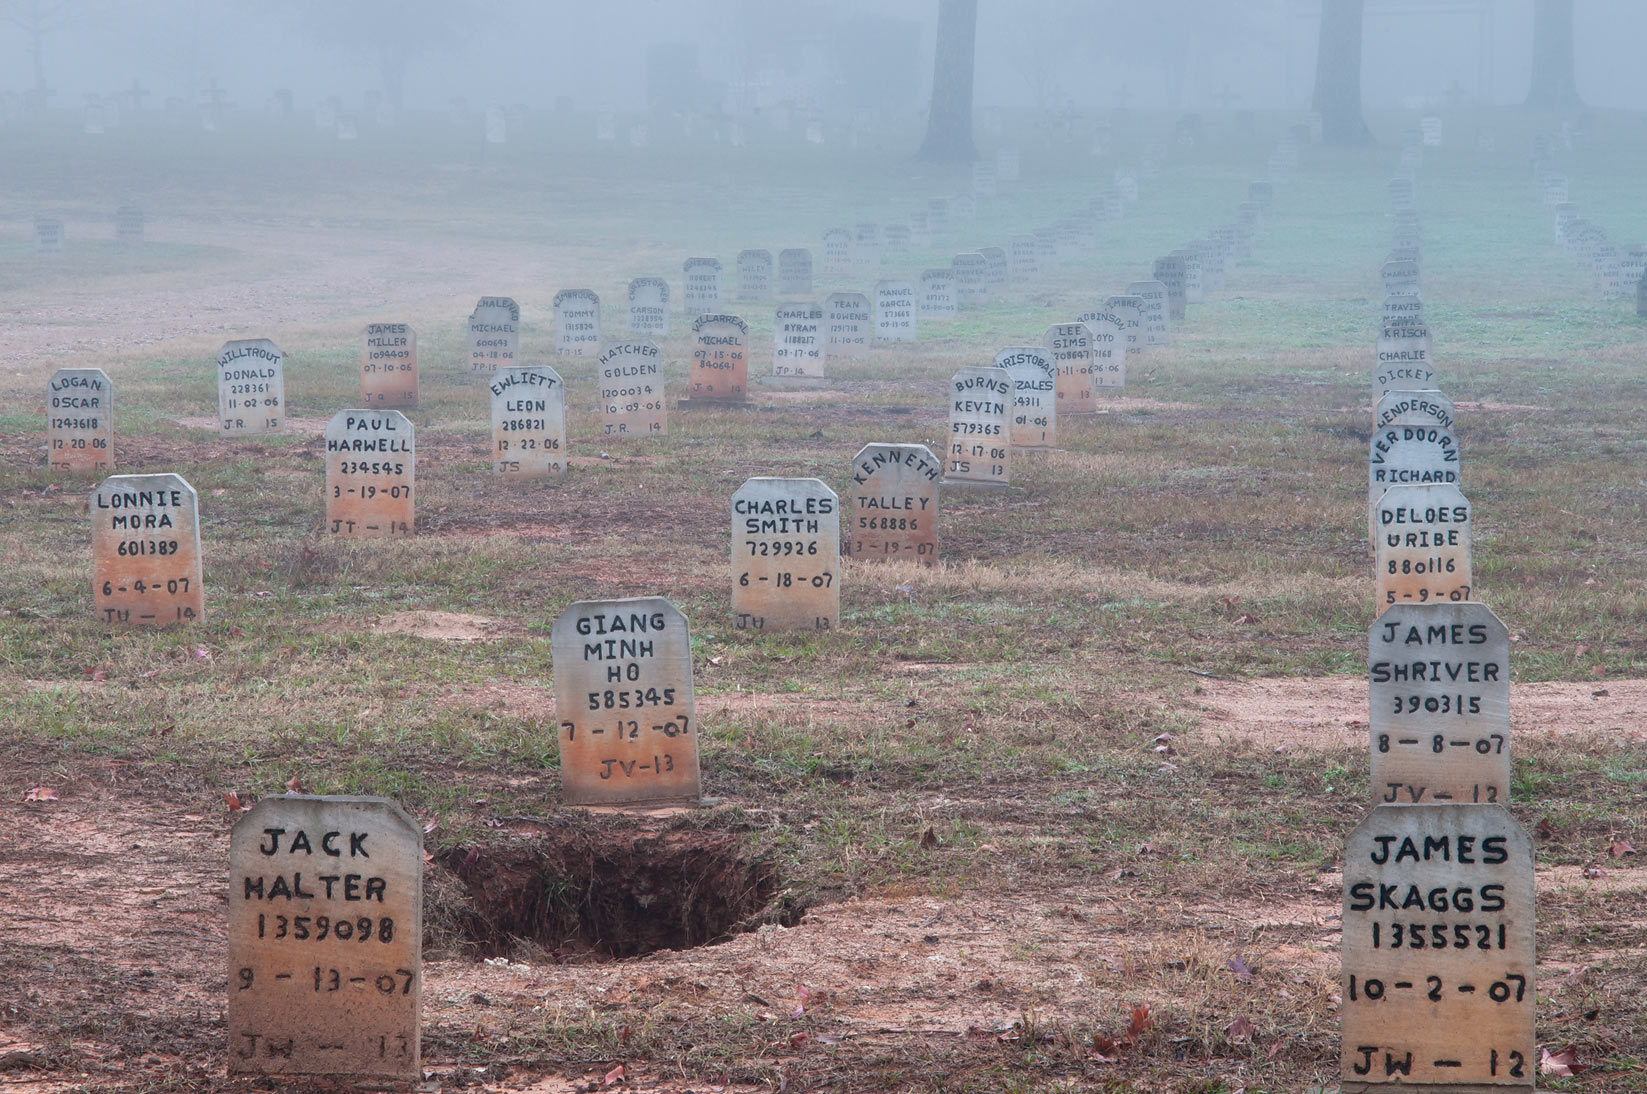 Recent headstones of TDCJ Captain Joe Byrd...Cemetery in fog. Huntsville, Texas